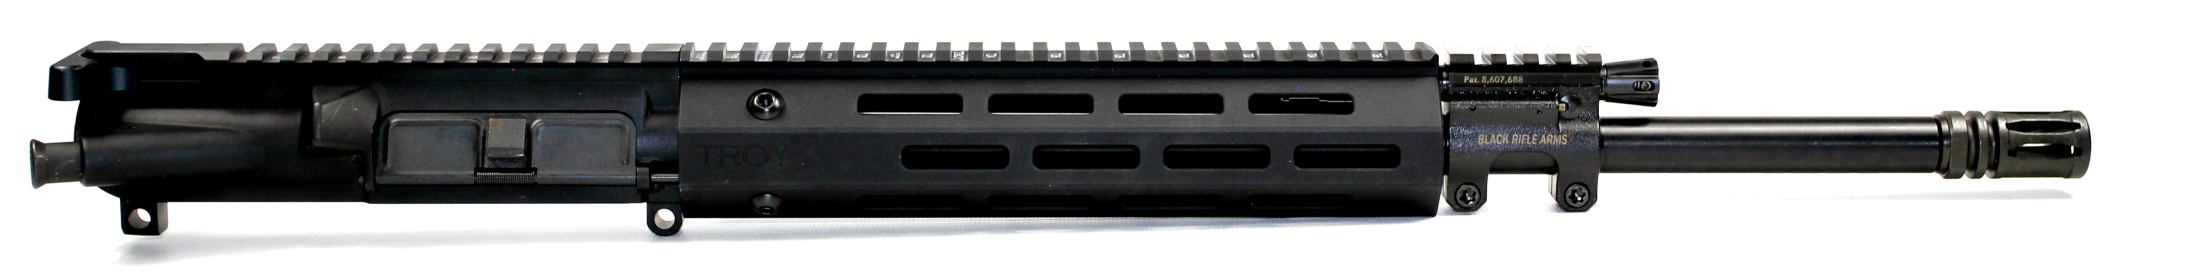 5.56x45 C.A.P.S. Mid-Length Piston Upper with Troy M-Lok Handguard with Chrome Line Barrel